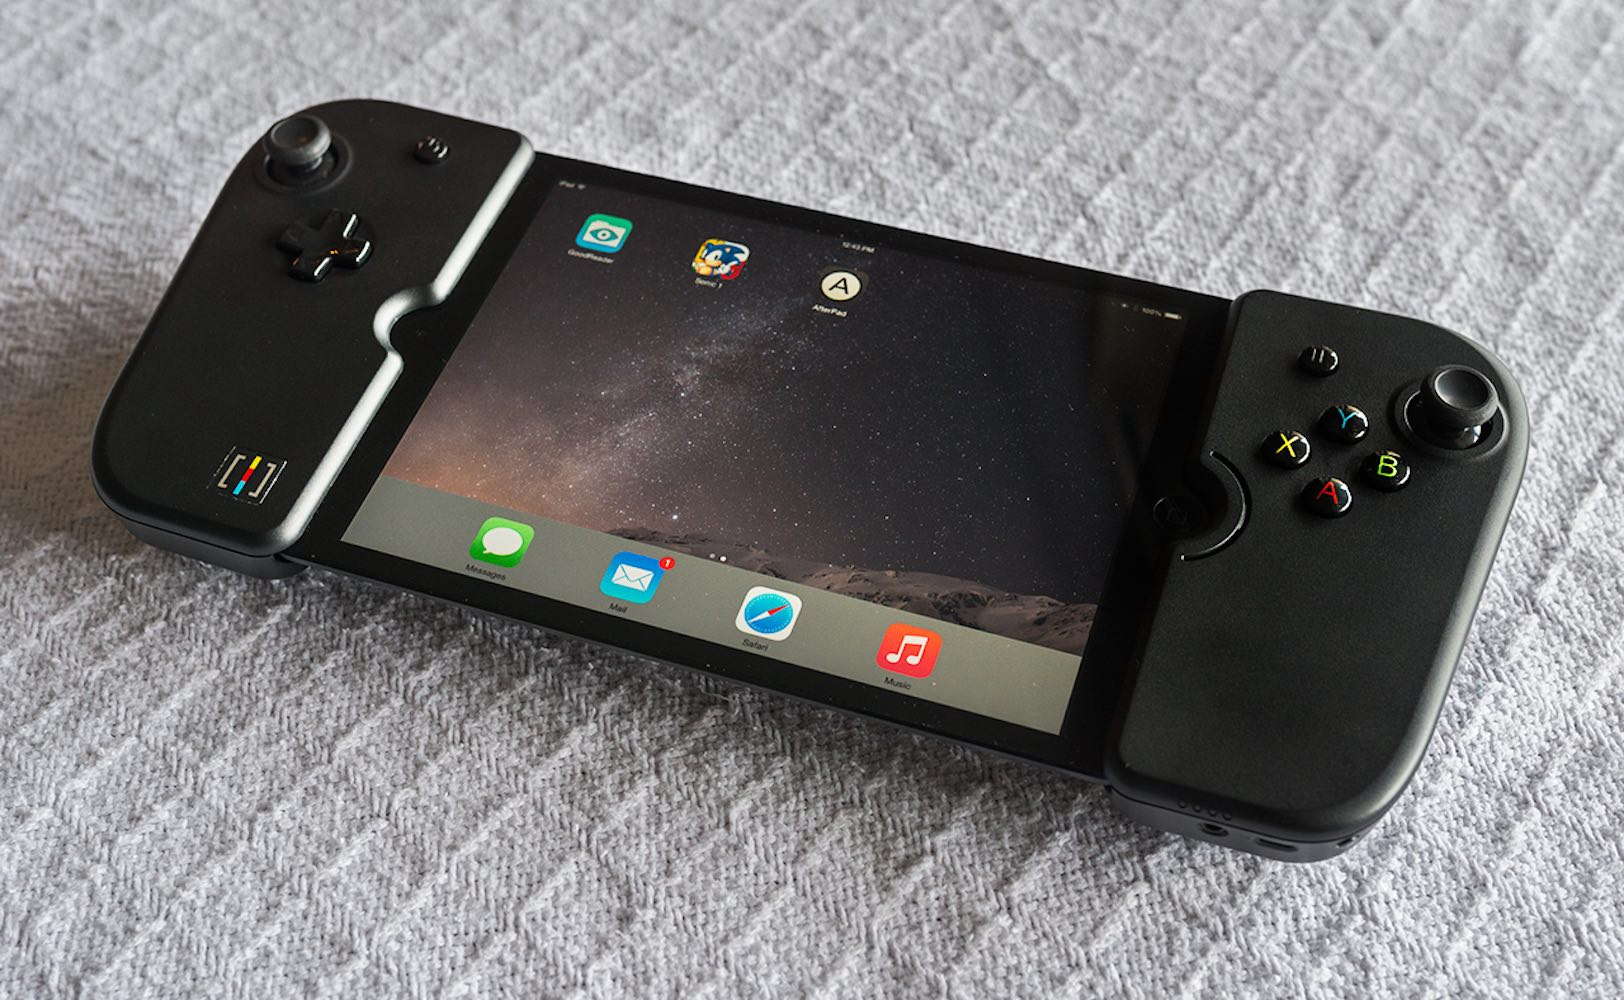 Gamevice Handheld Controller for iPad Mini - Not Any Gadgets